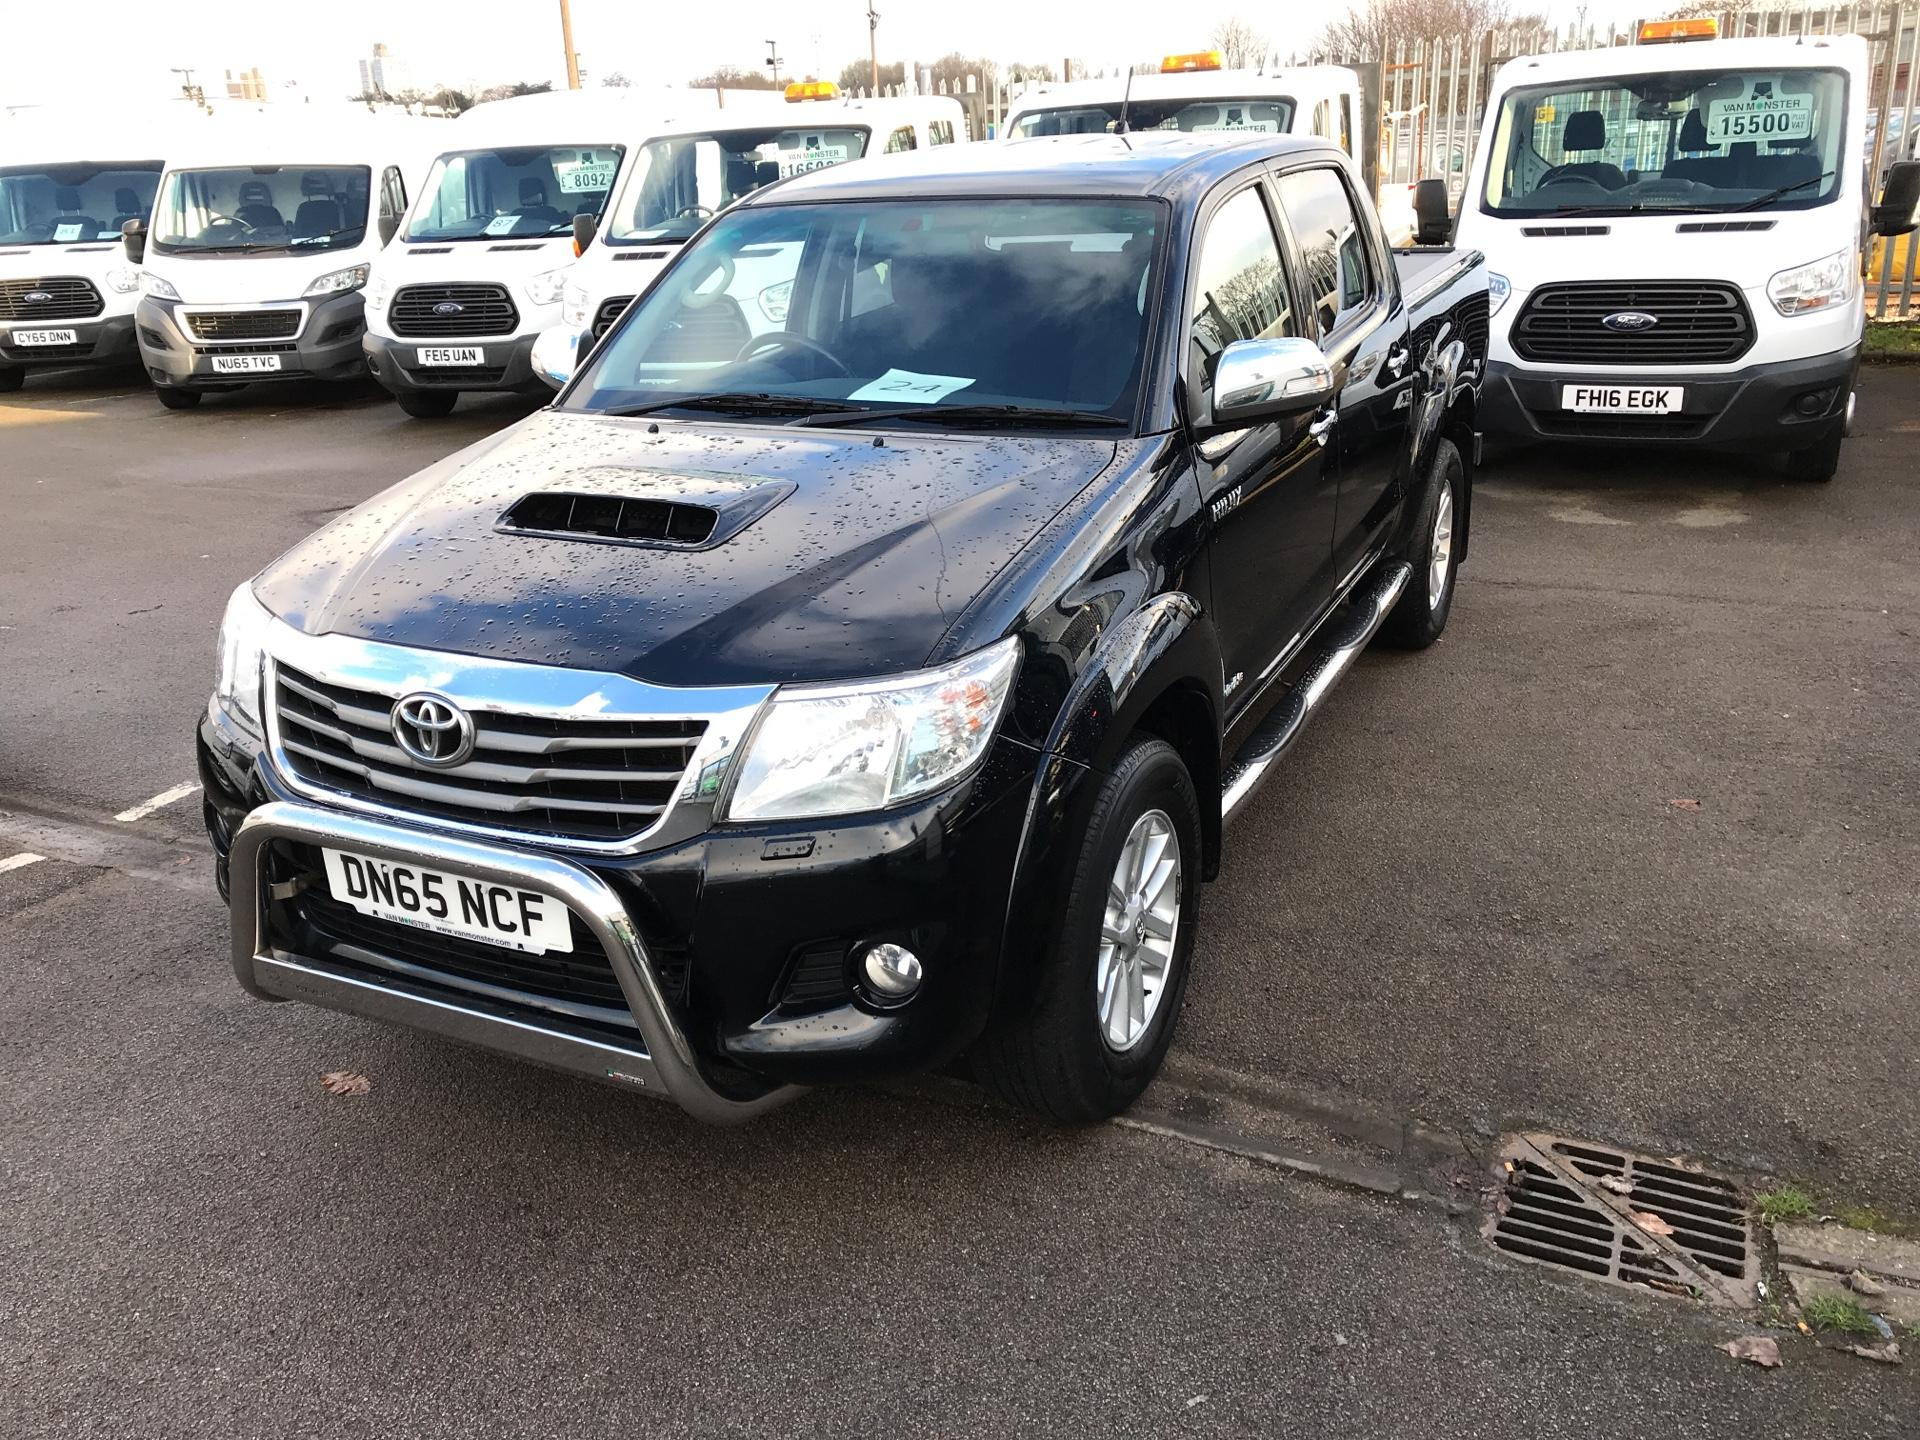 2016 Toyota Hilux DOUBLE CAB PICK UP 3.0 4WD 171 INVINCIBLE EURO 5  (DN65NCF) Image 7